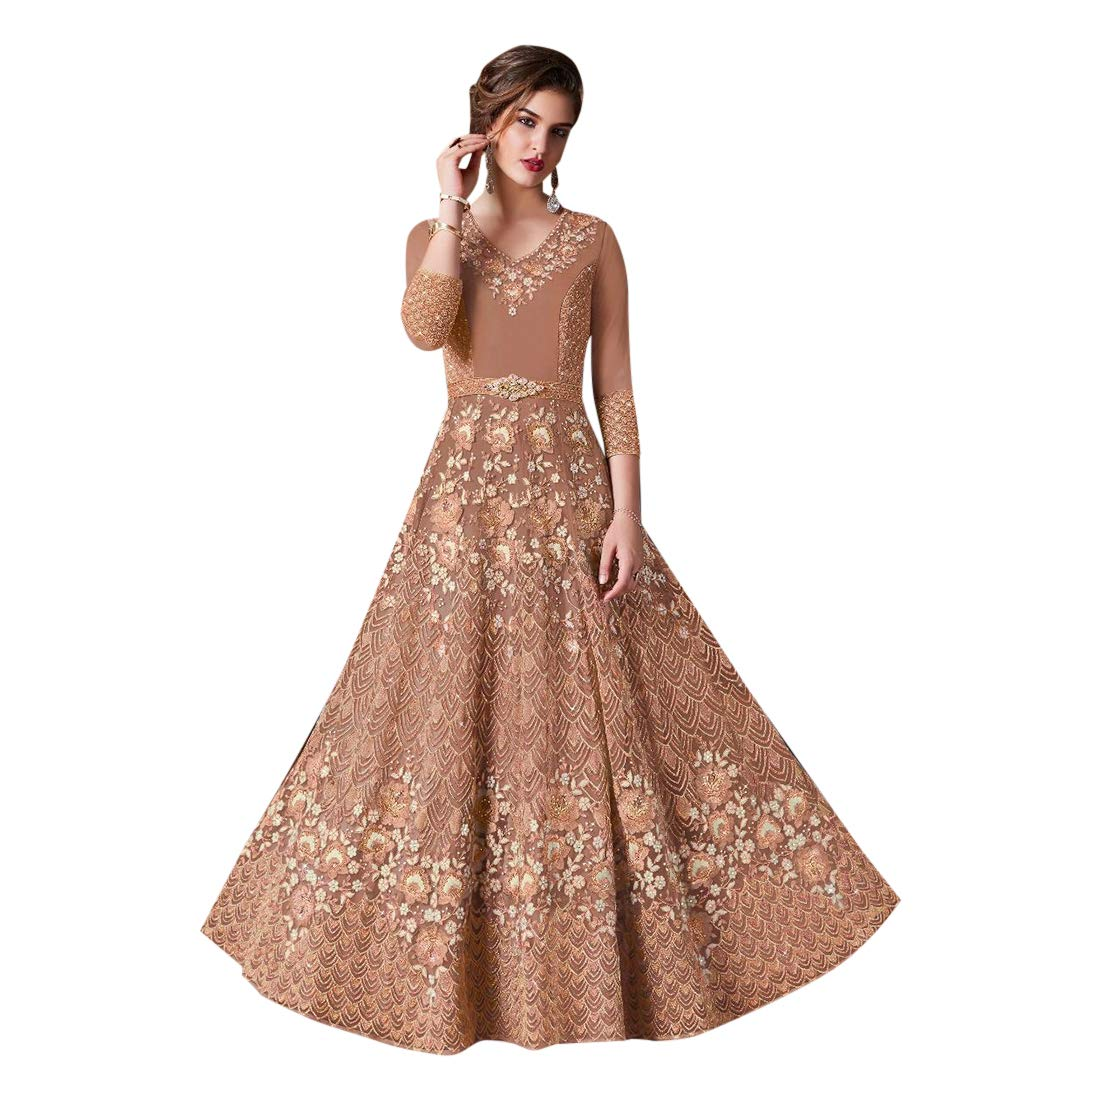 Designer Party Skirt style Gown Salwar Kameez suit Dupatta for Women Ethnic Indian Muslim dress 7708